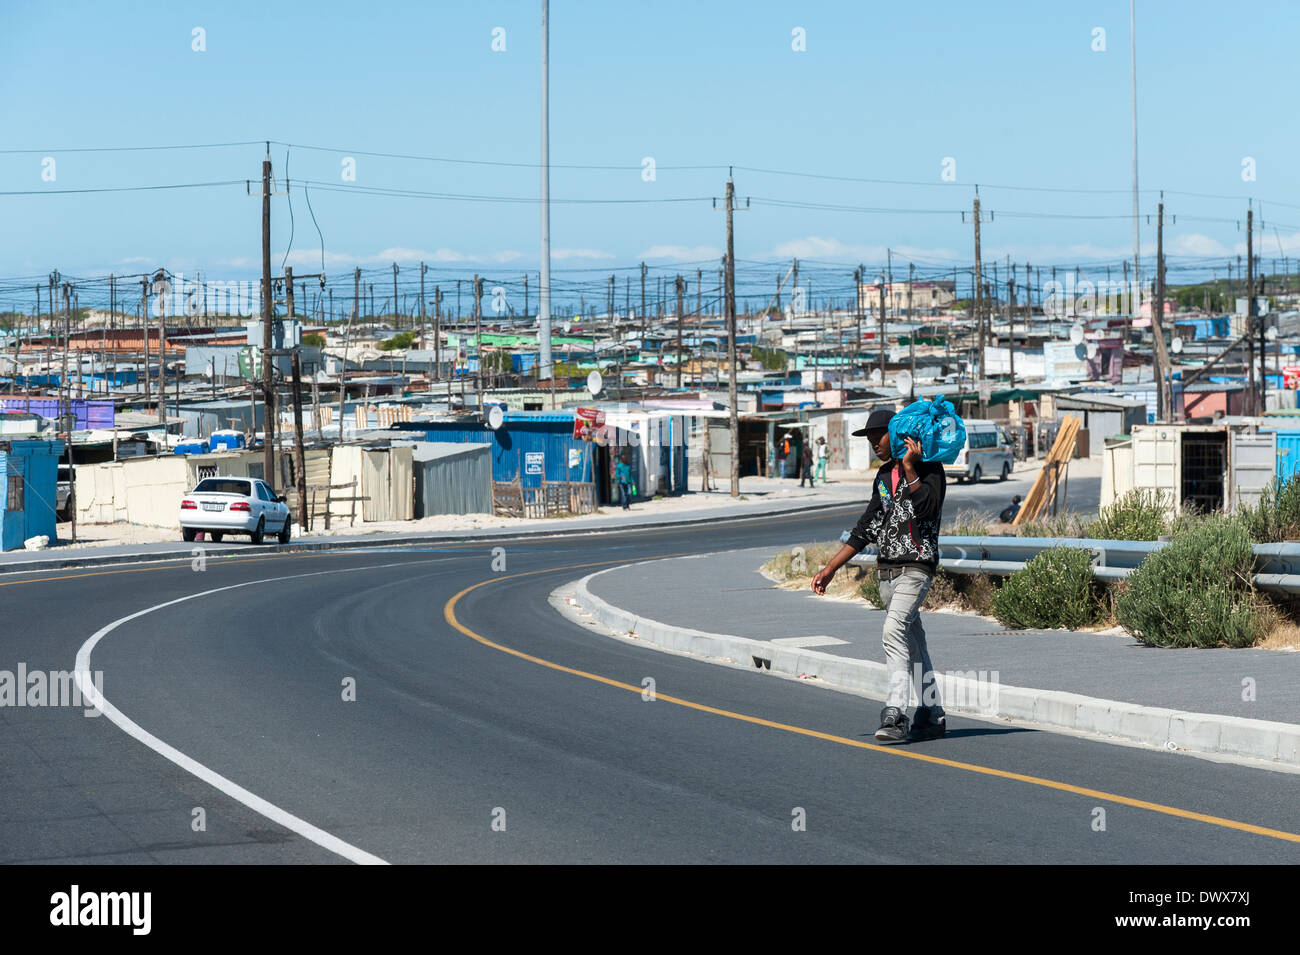 Man carrying a bag crosses a road in Khayelitsha, Cape Town, Western Cape, South Africa - Stock Image